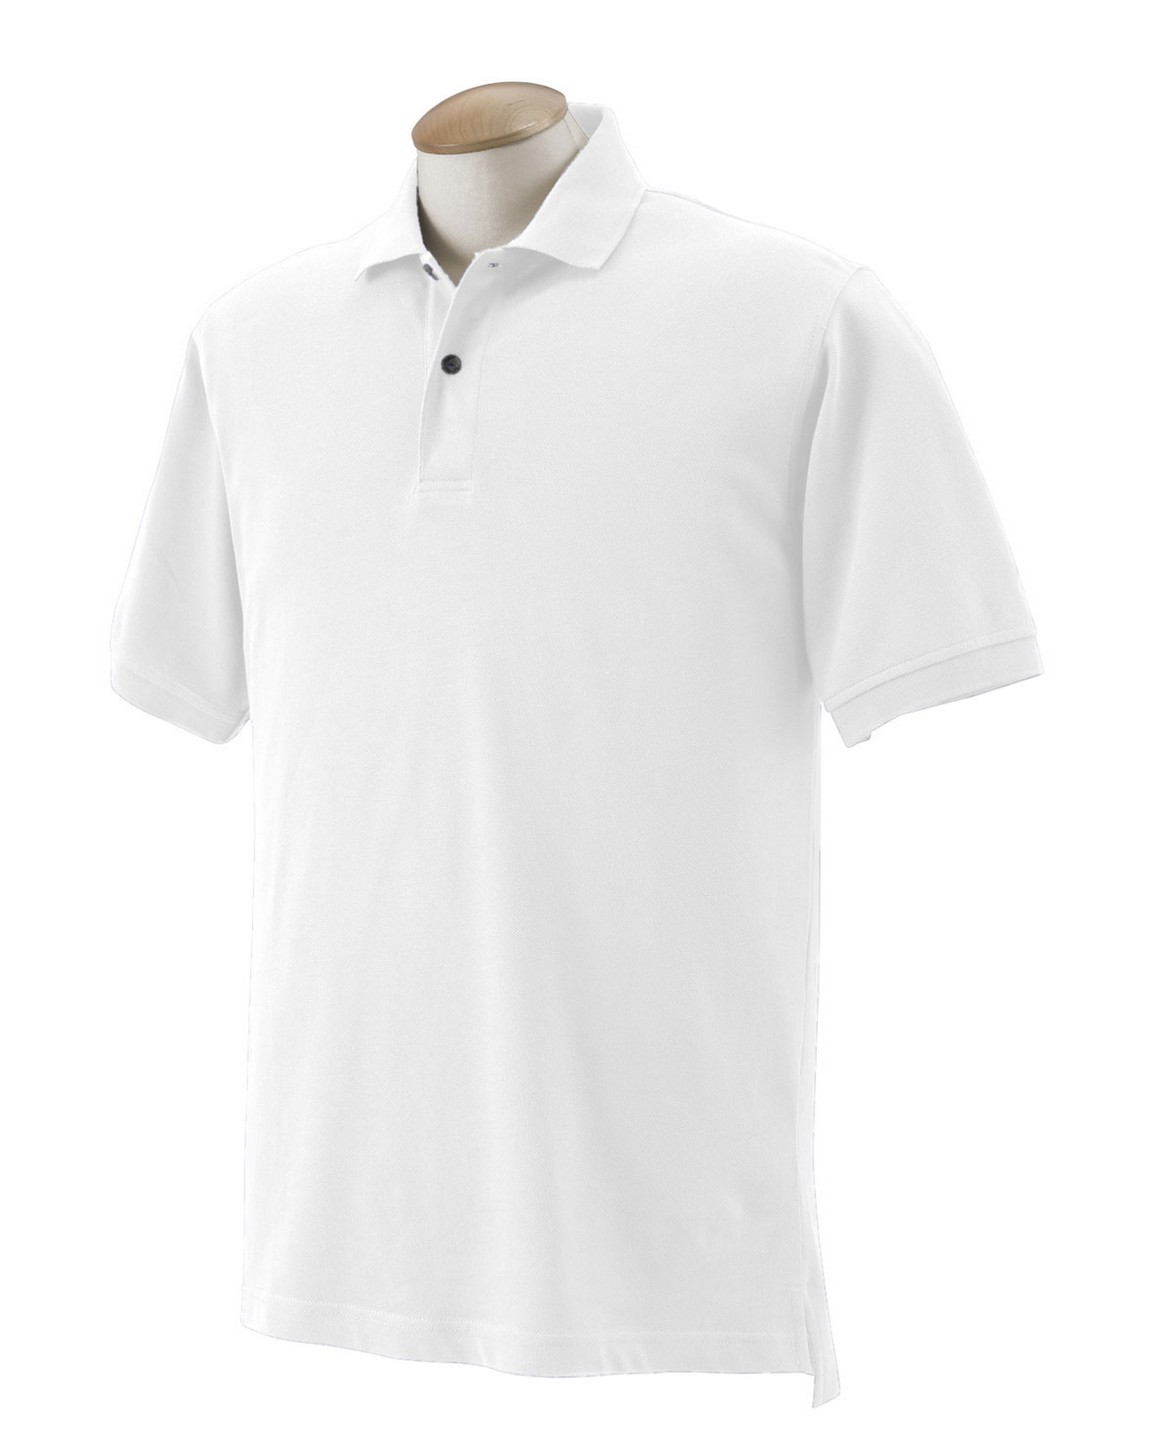 Designer Golf Polo Shirts Sale Chad Crowley Productions